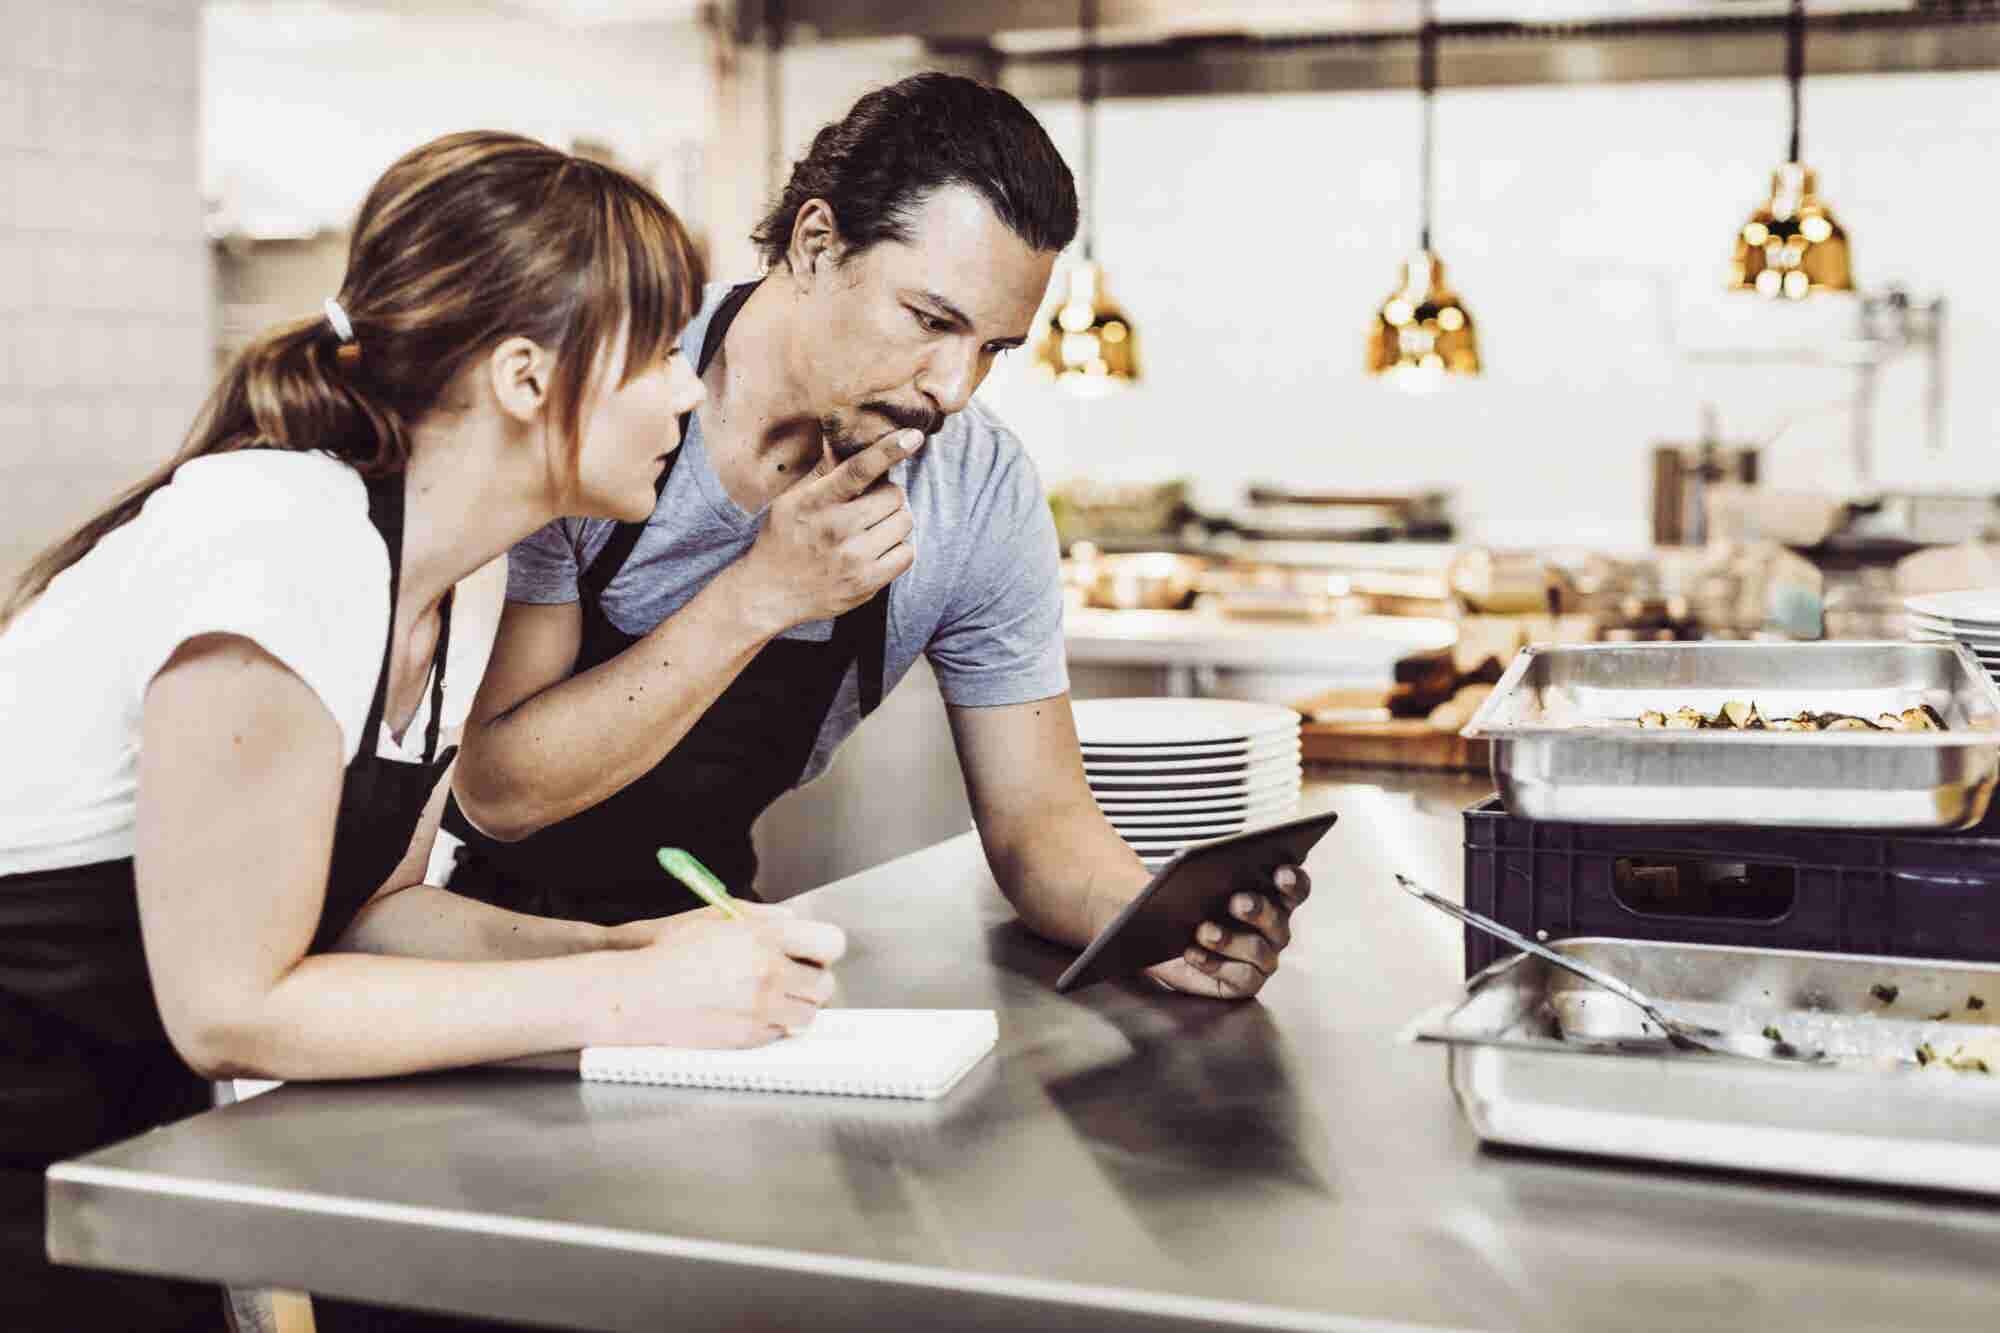 Use These 3 Strategies for Your Food Startup to Stand Out and Take Off